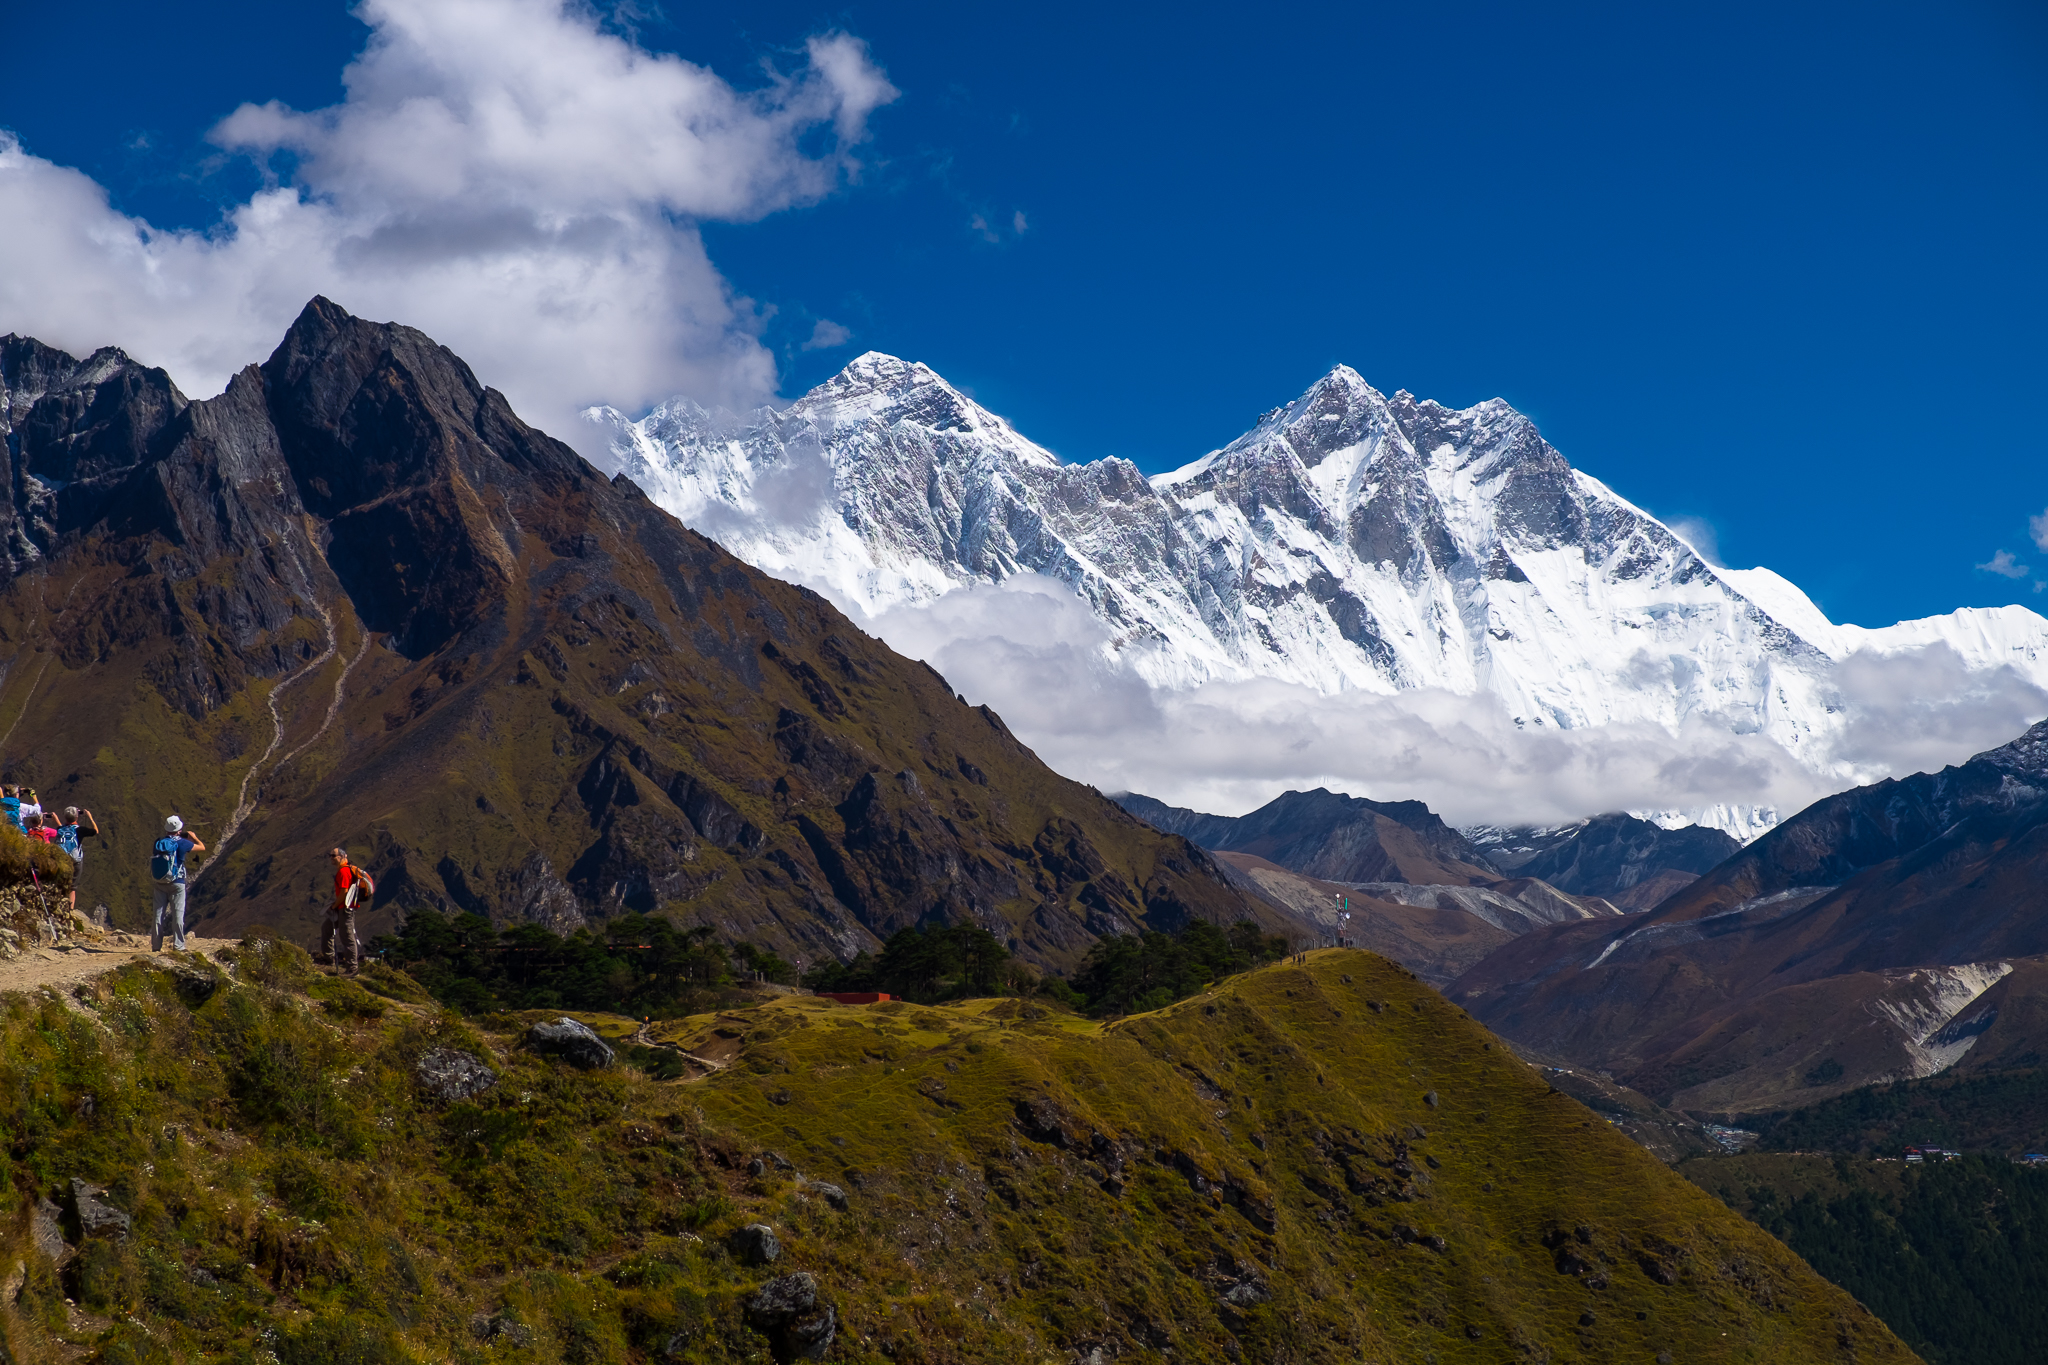 Everest (8,848m) on the left, Lhotse (8,414m) on the right.